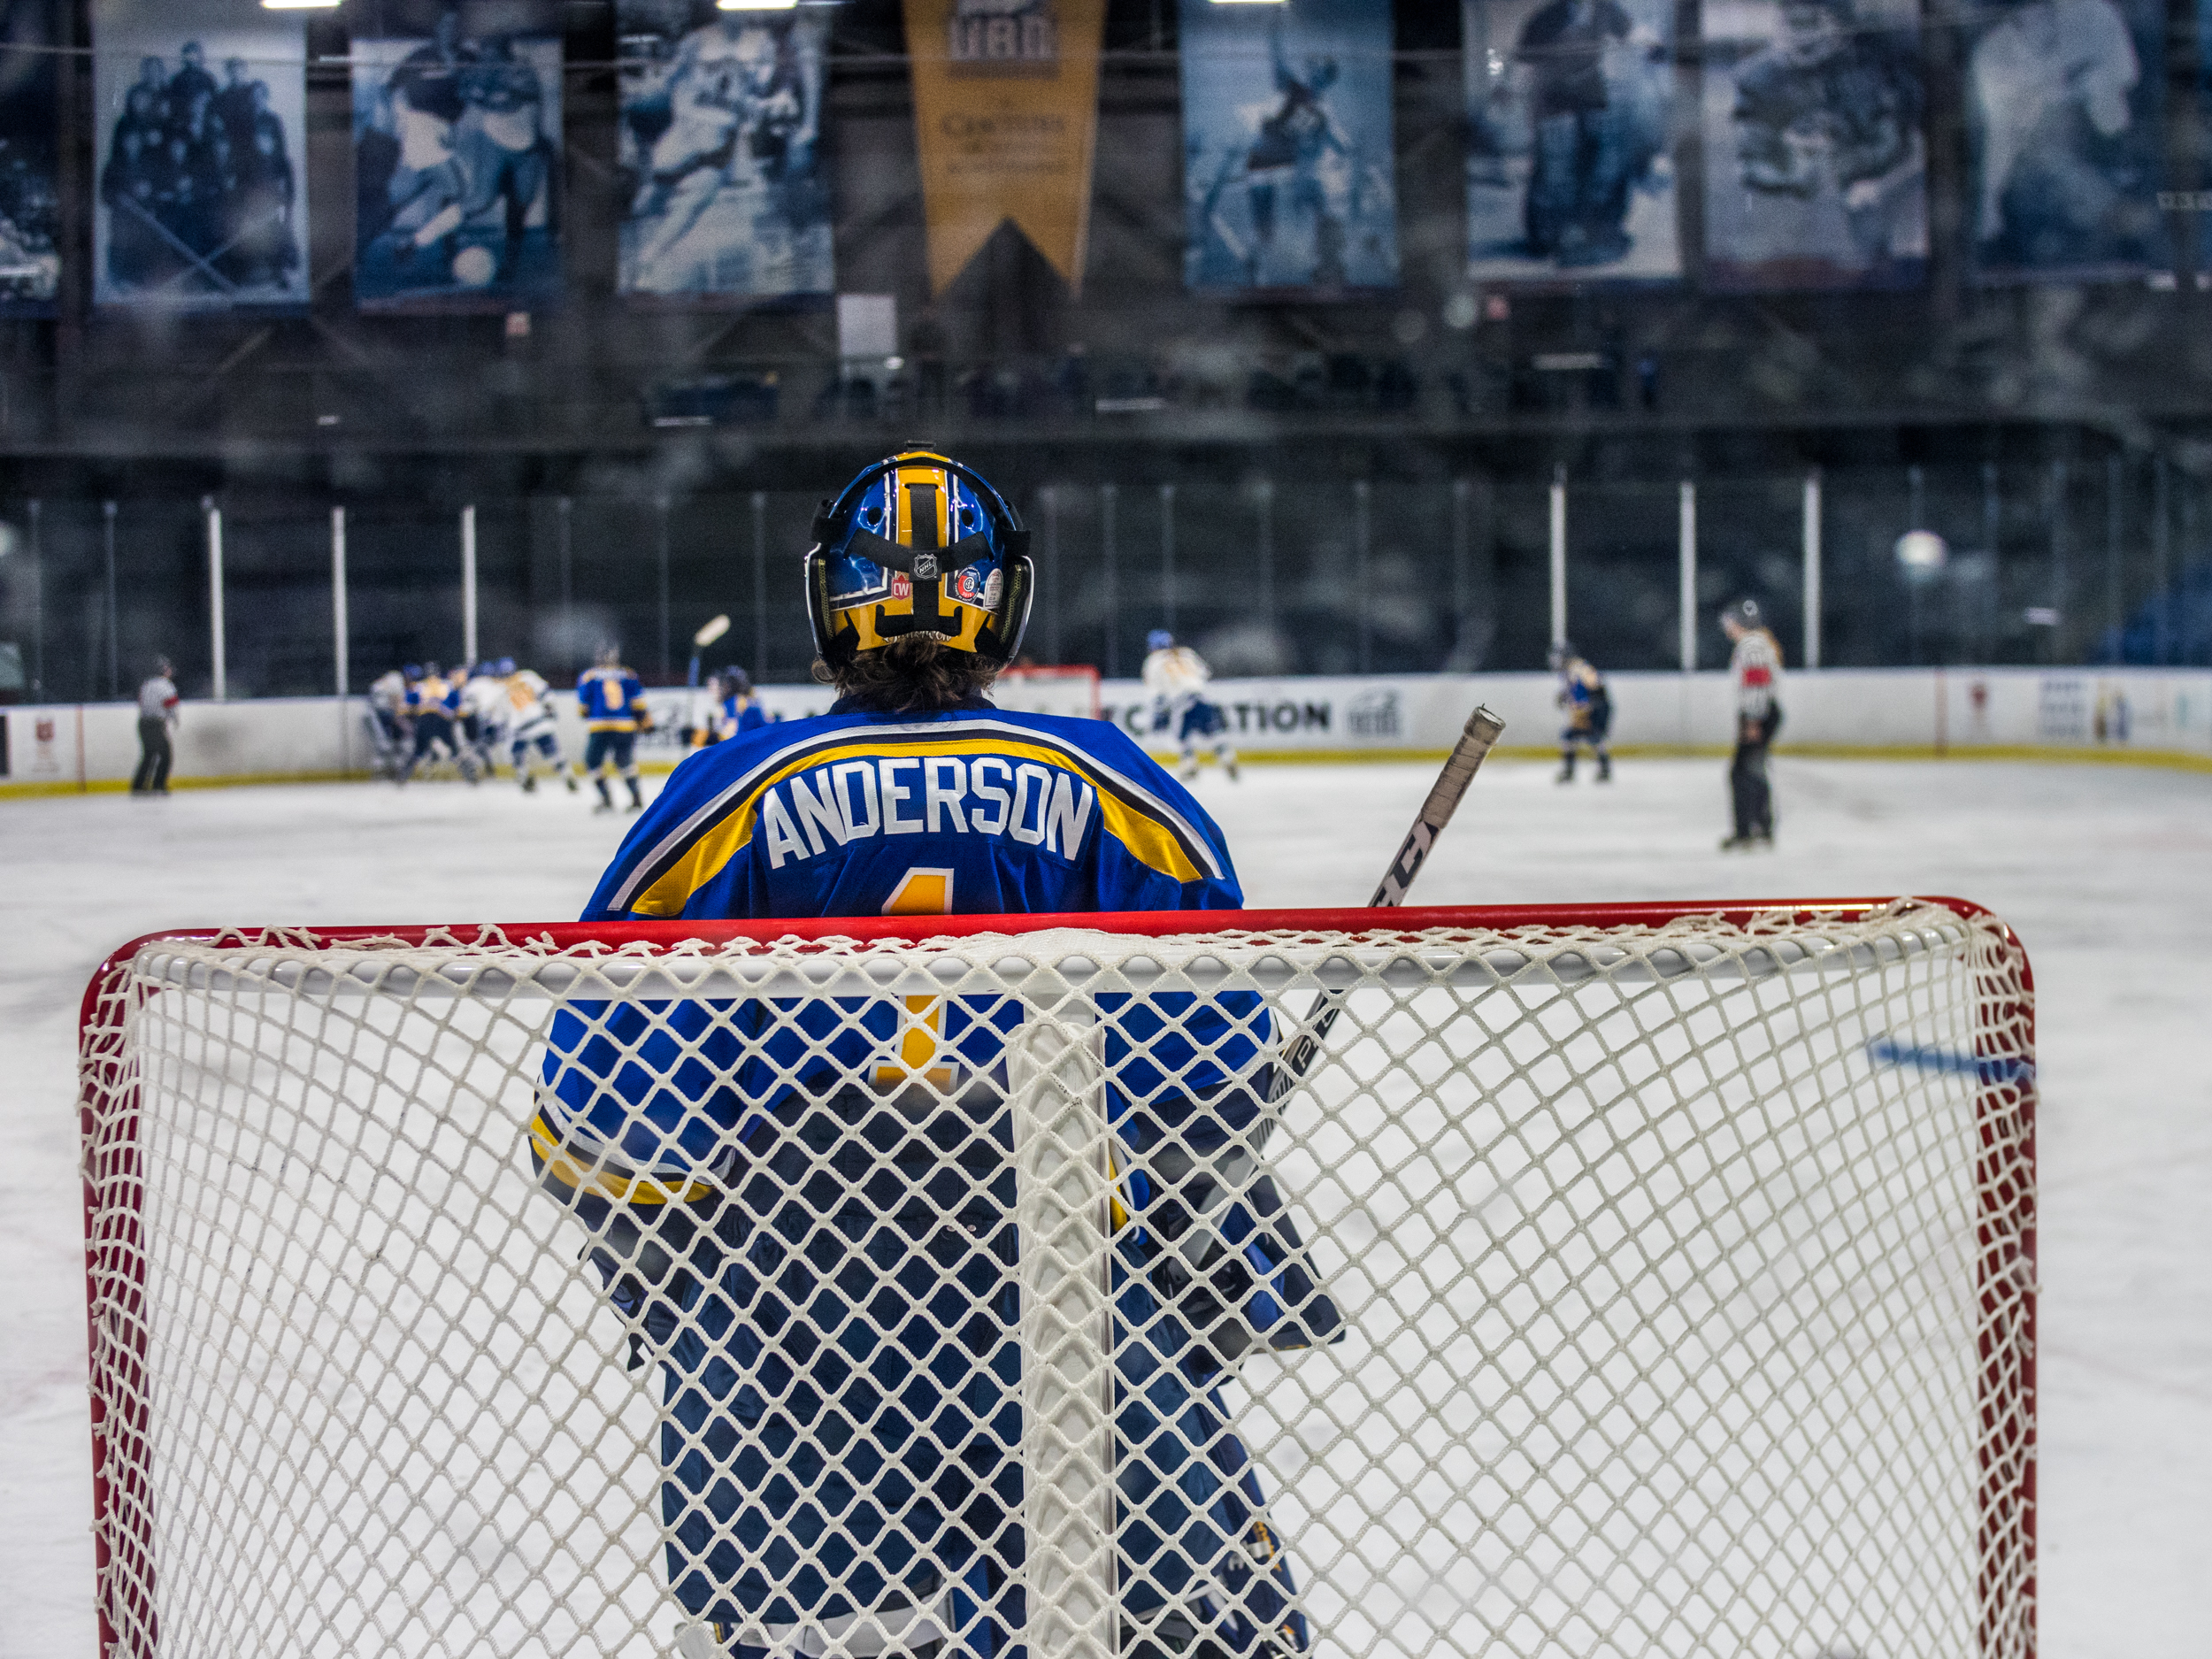 Lethbridge goalie Alicia Anderson looks at the action down ice.